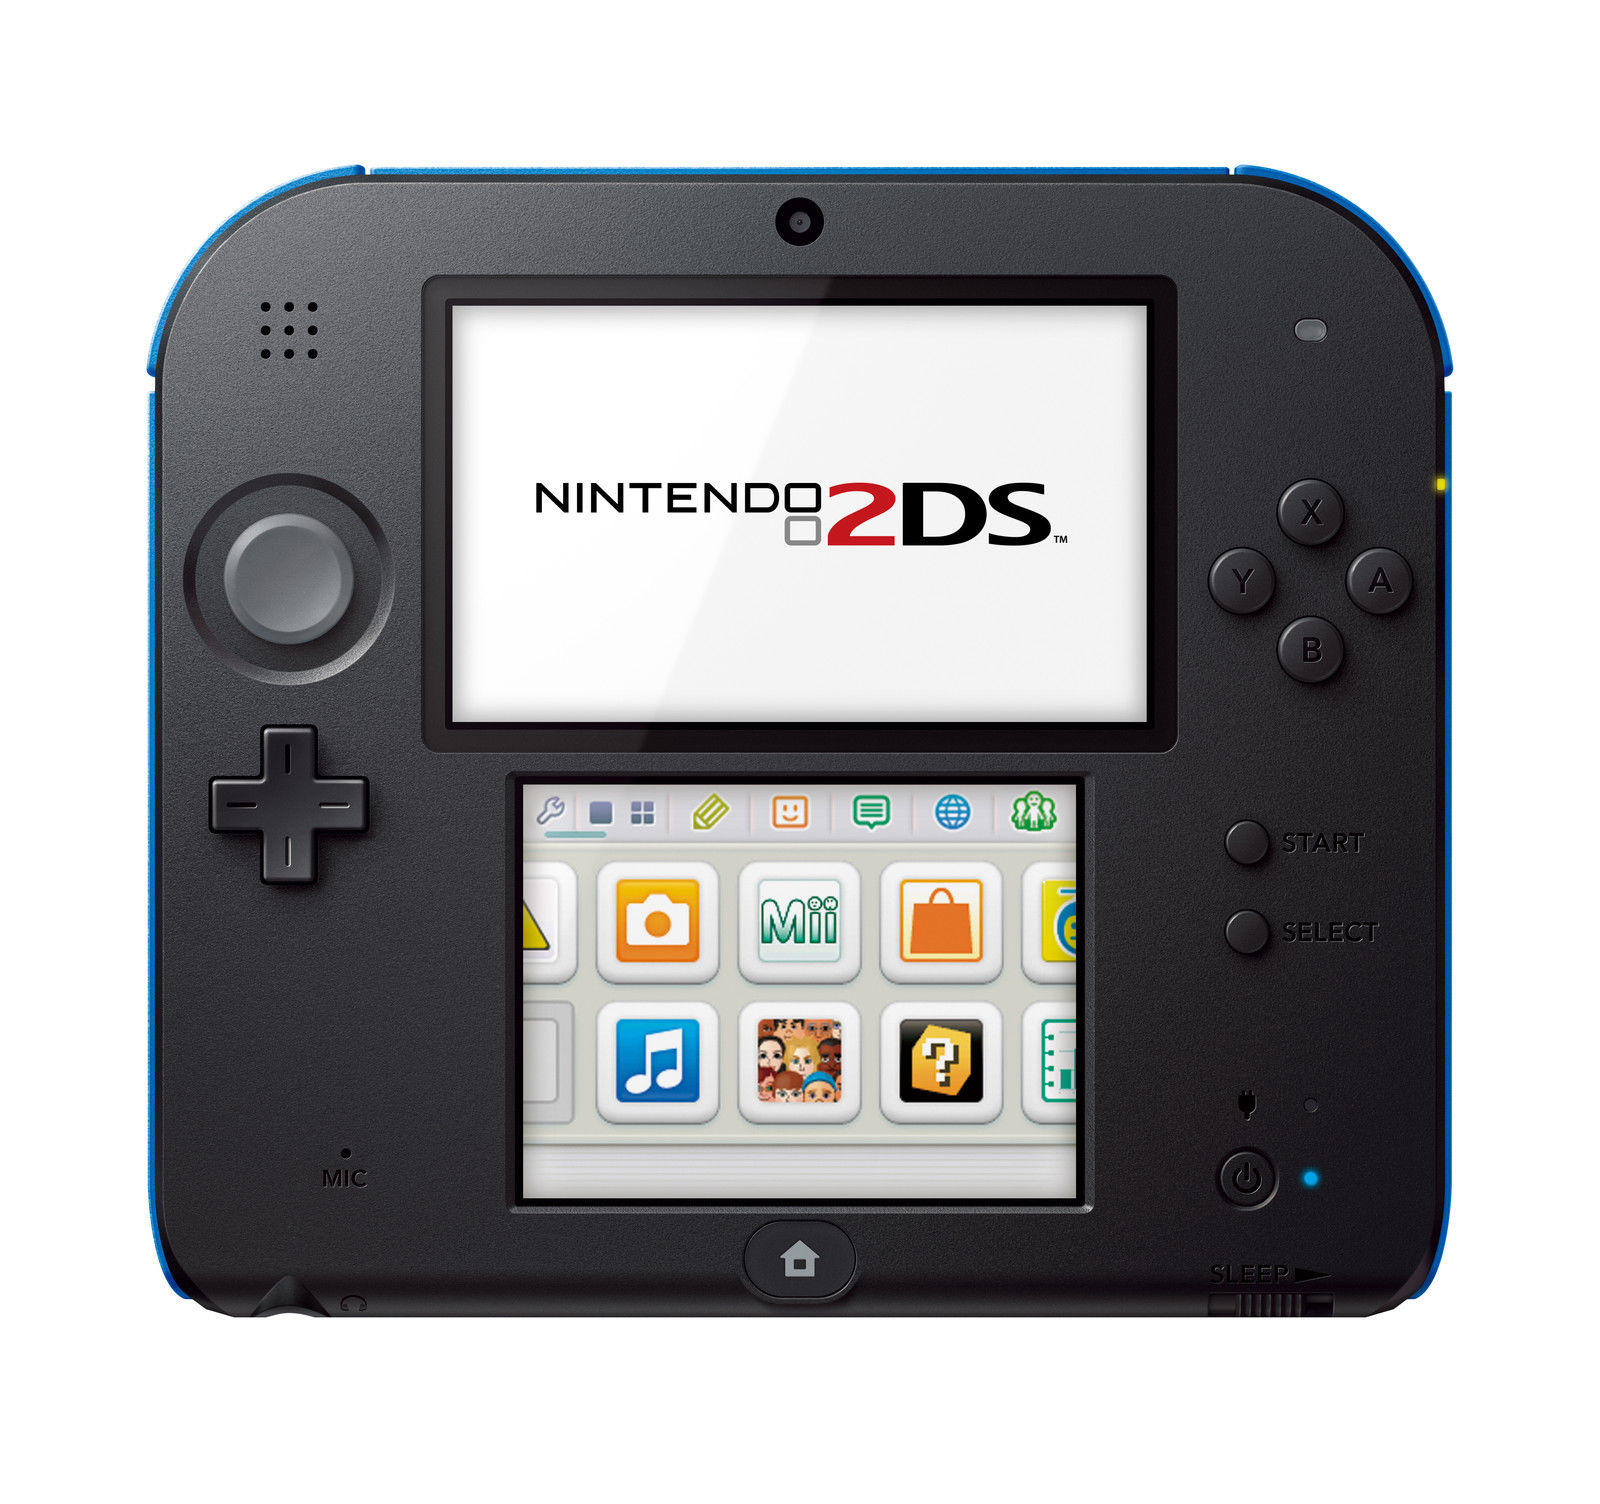 $60 Nintendo 2DS *FACTORY REFURBISHED BY NINTENDO